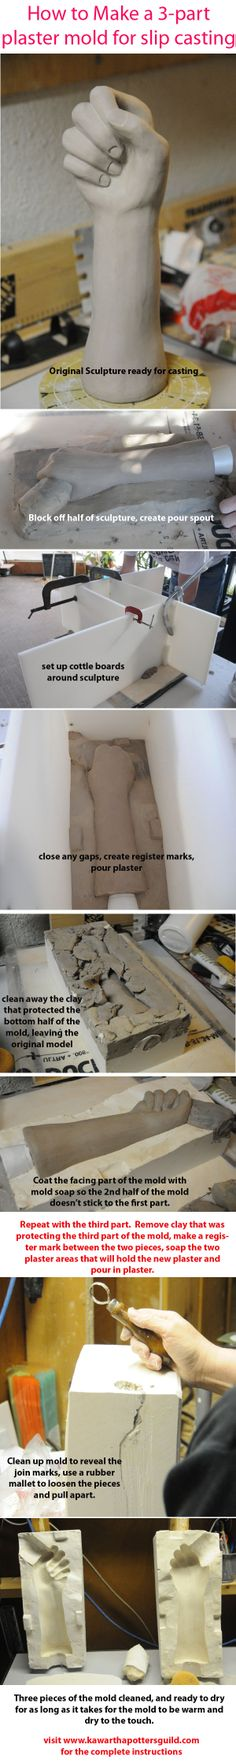 How to create a 3 part plaster mold for slip casting pottery. See www.kawarthapottersguild.com for more details.